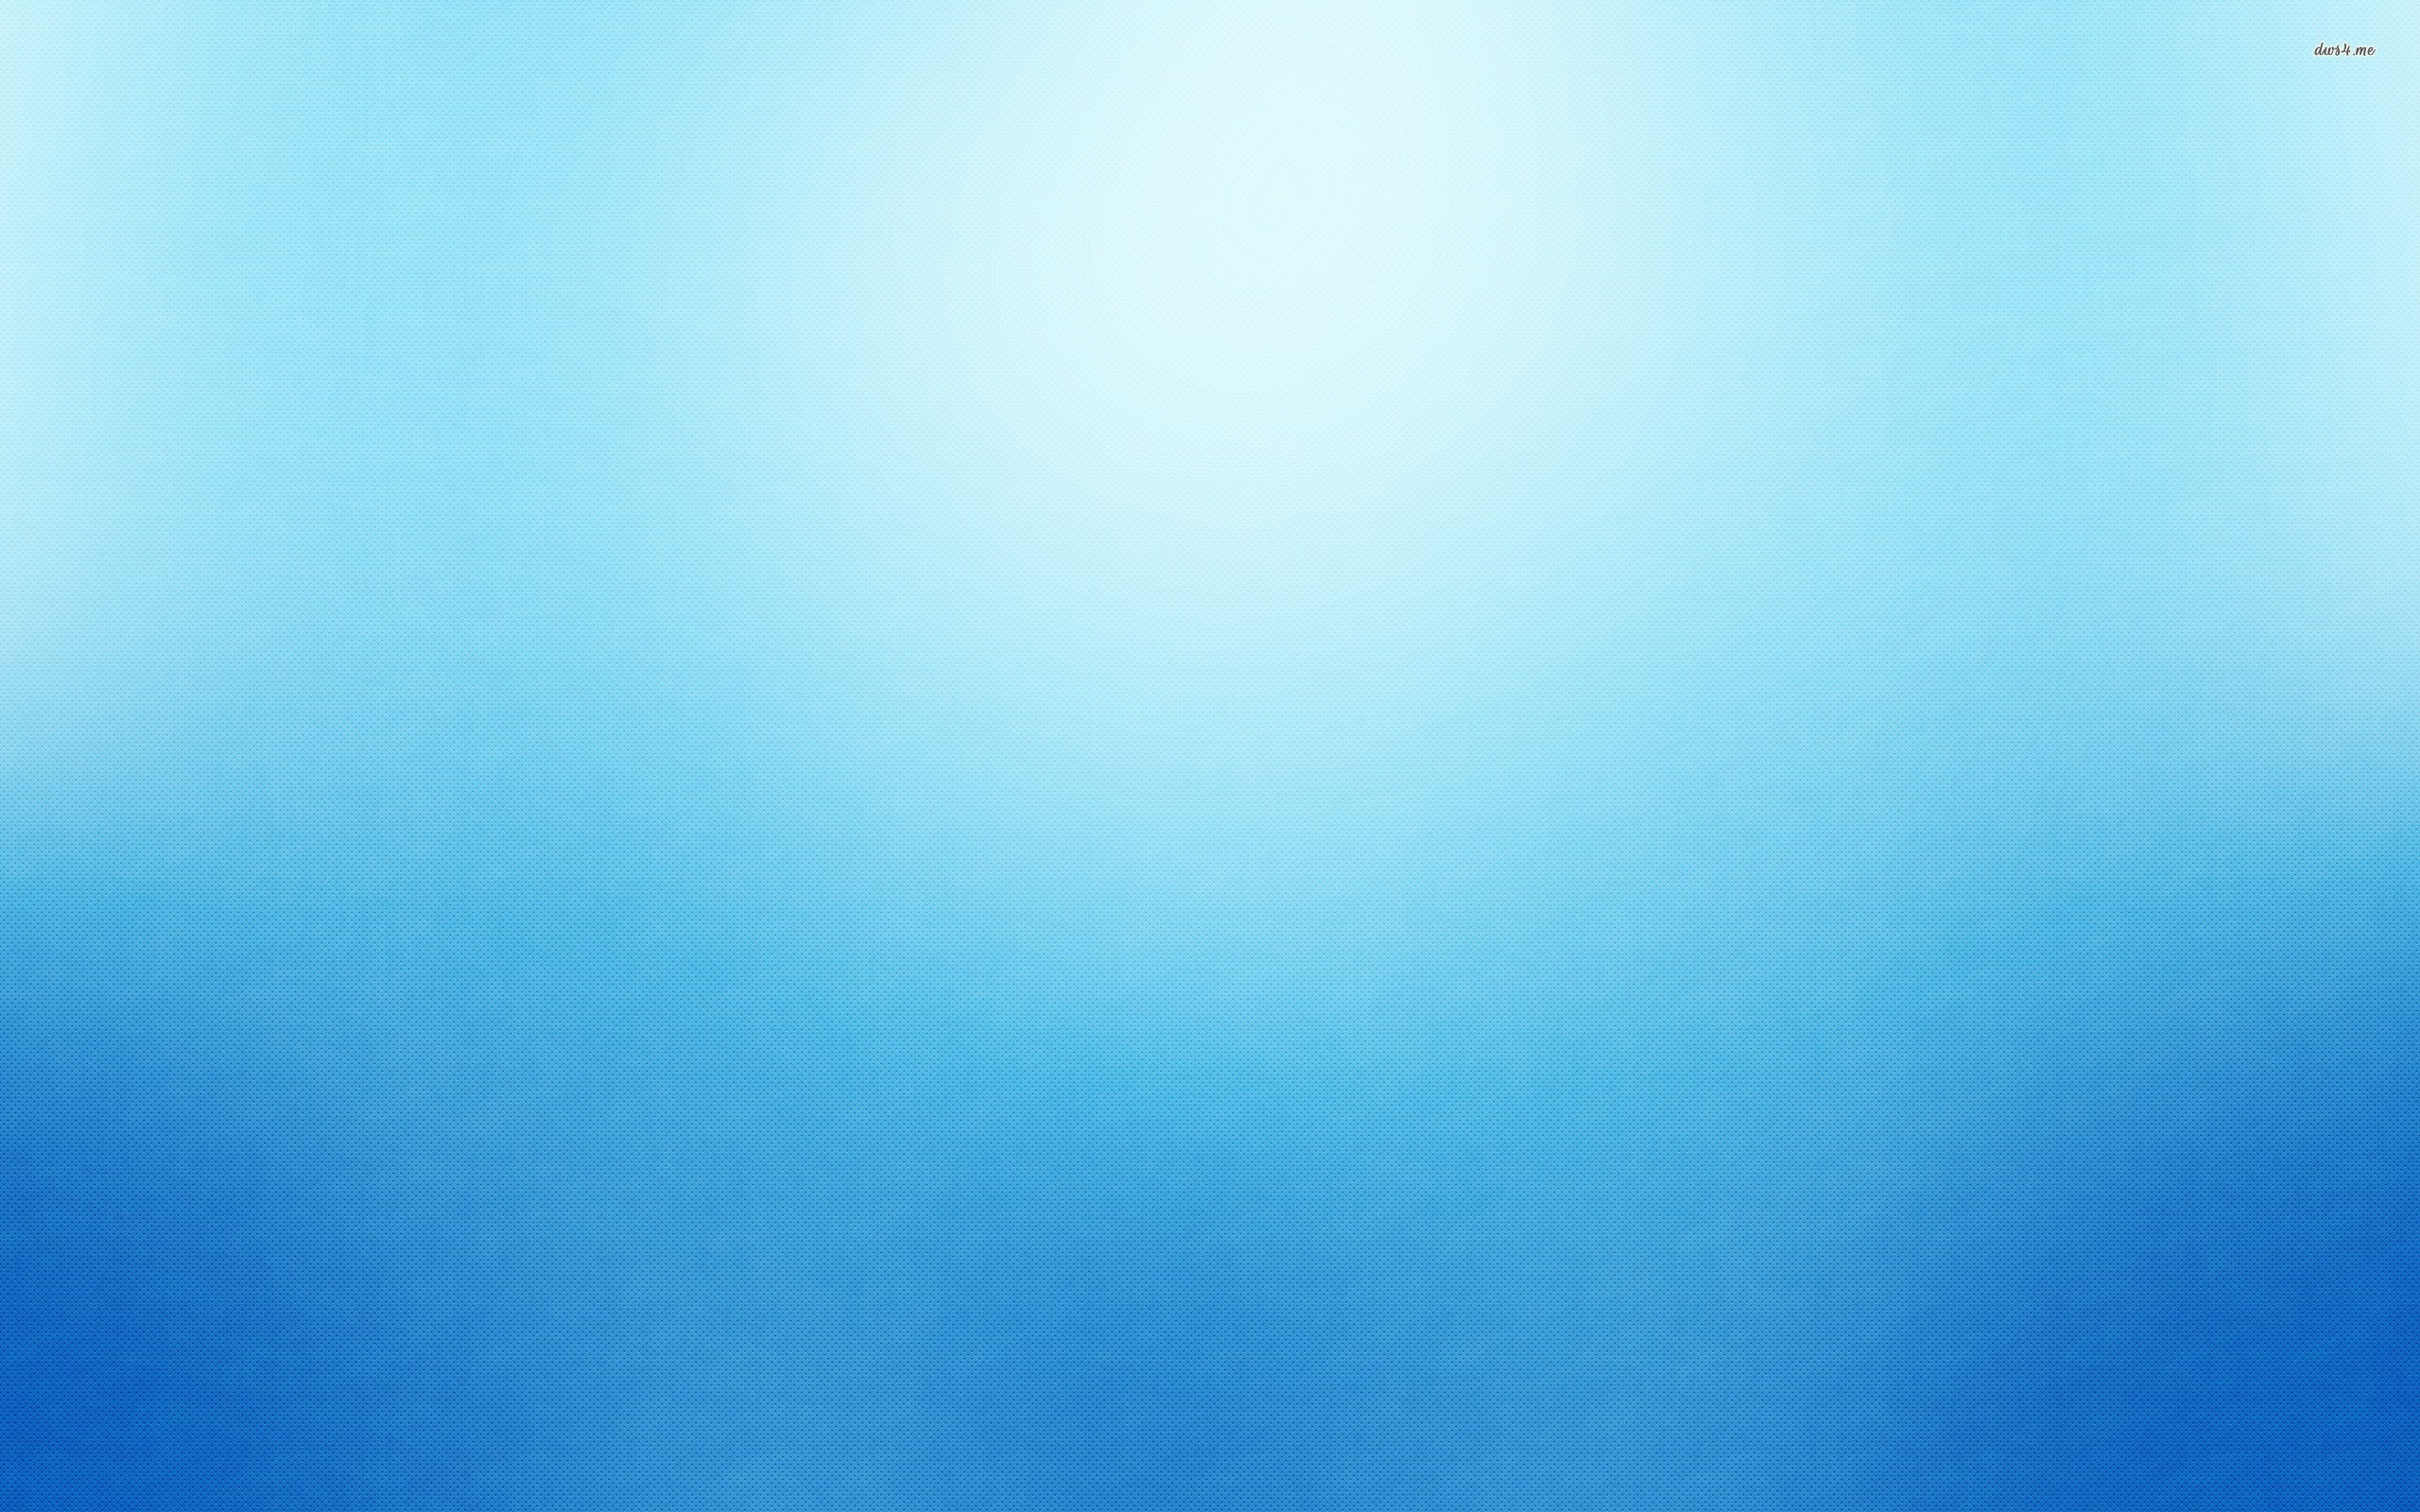 Light blue texture wallpaper   Abstract wallpapers   21390 2560x1600